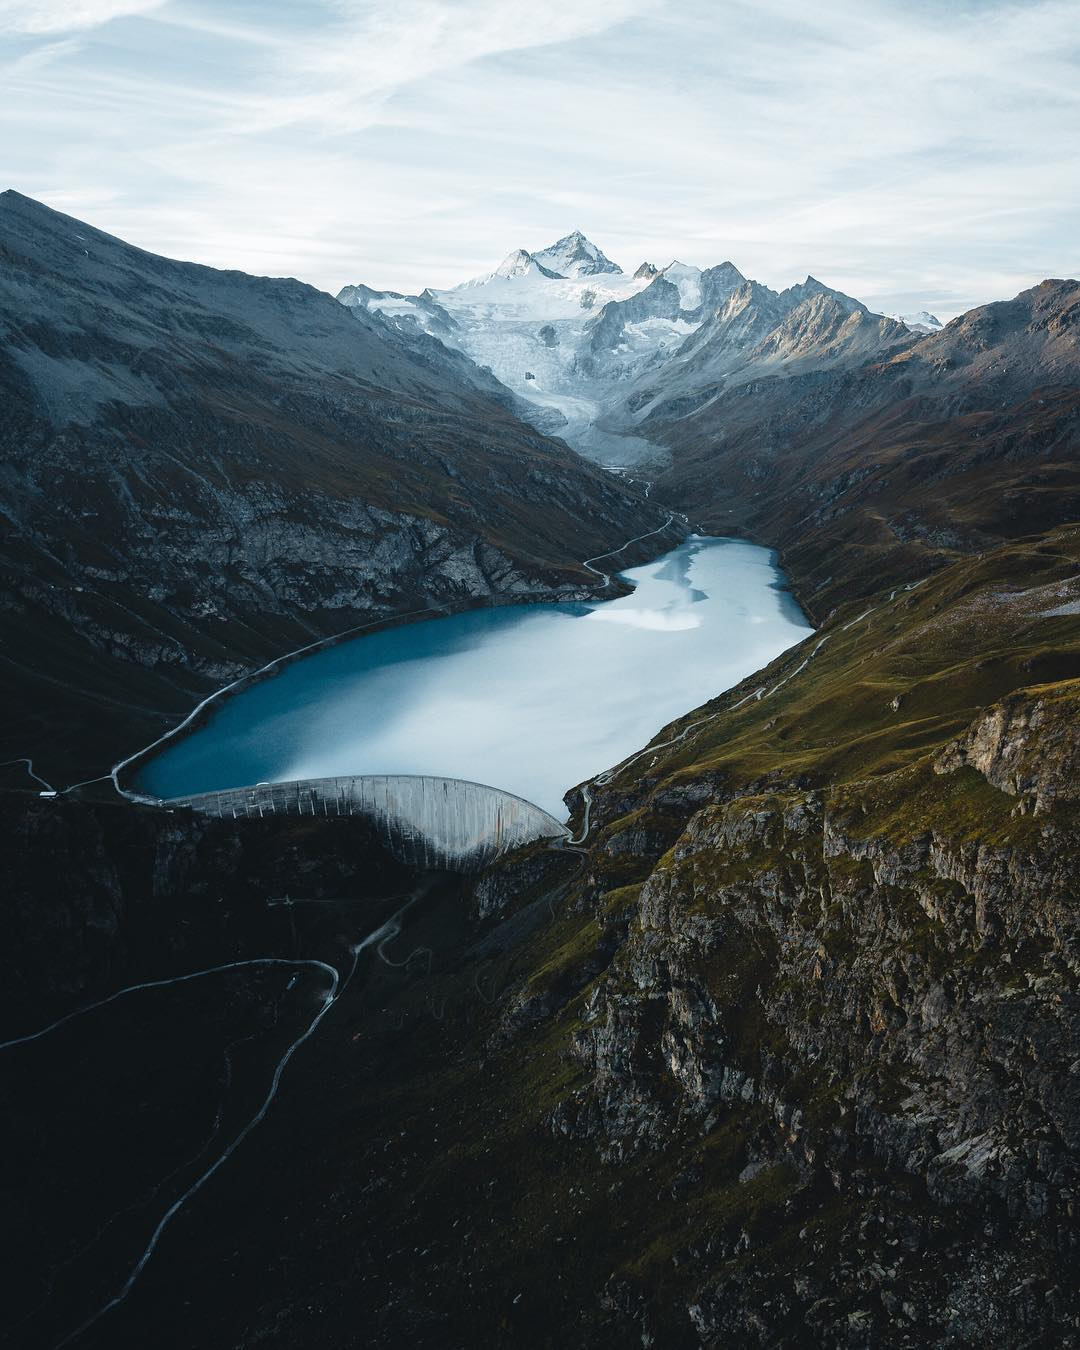 Lac de Moiry drone photo